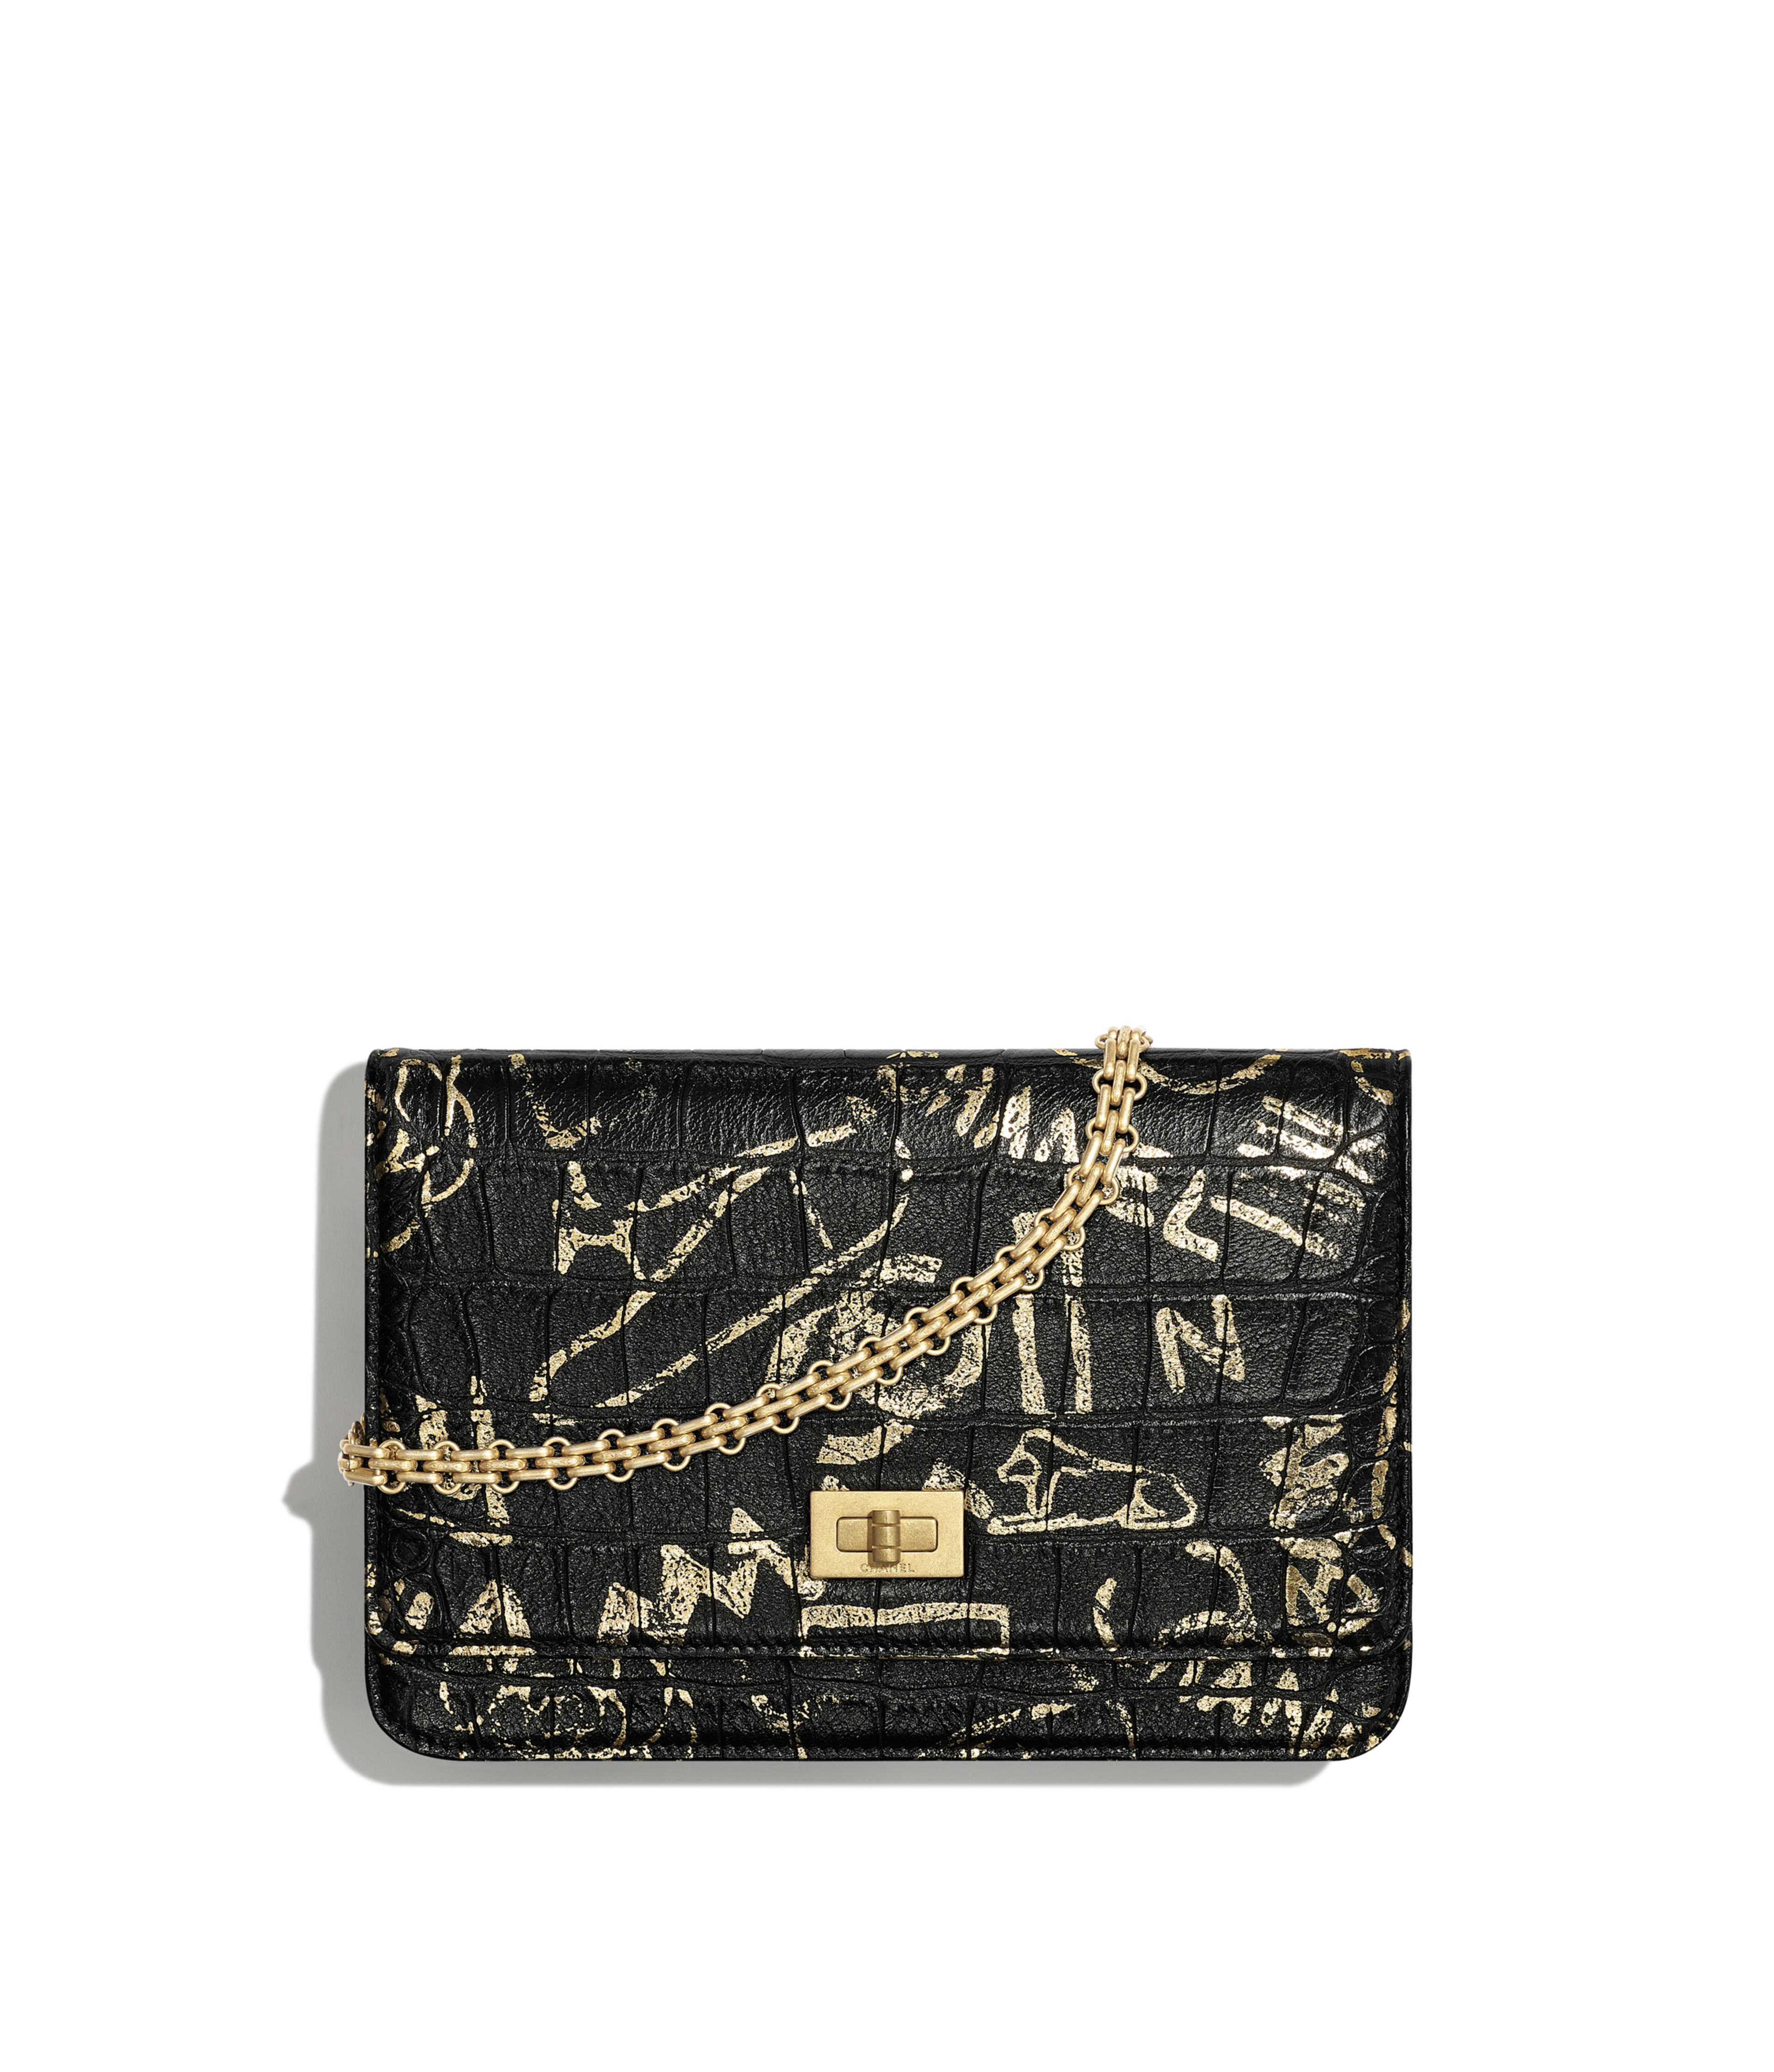 243291c752a4 2.55 Wallet on Chain Crocodile Embossed Printed Leather & Gold-Tone Metal,  Black & Gold Ref. A70328B00979N0784